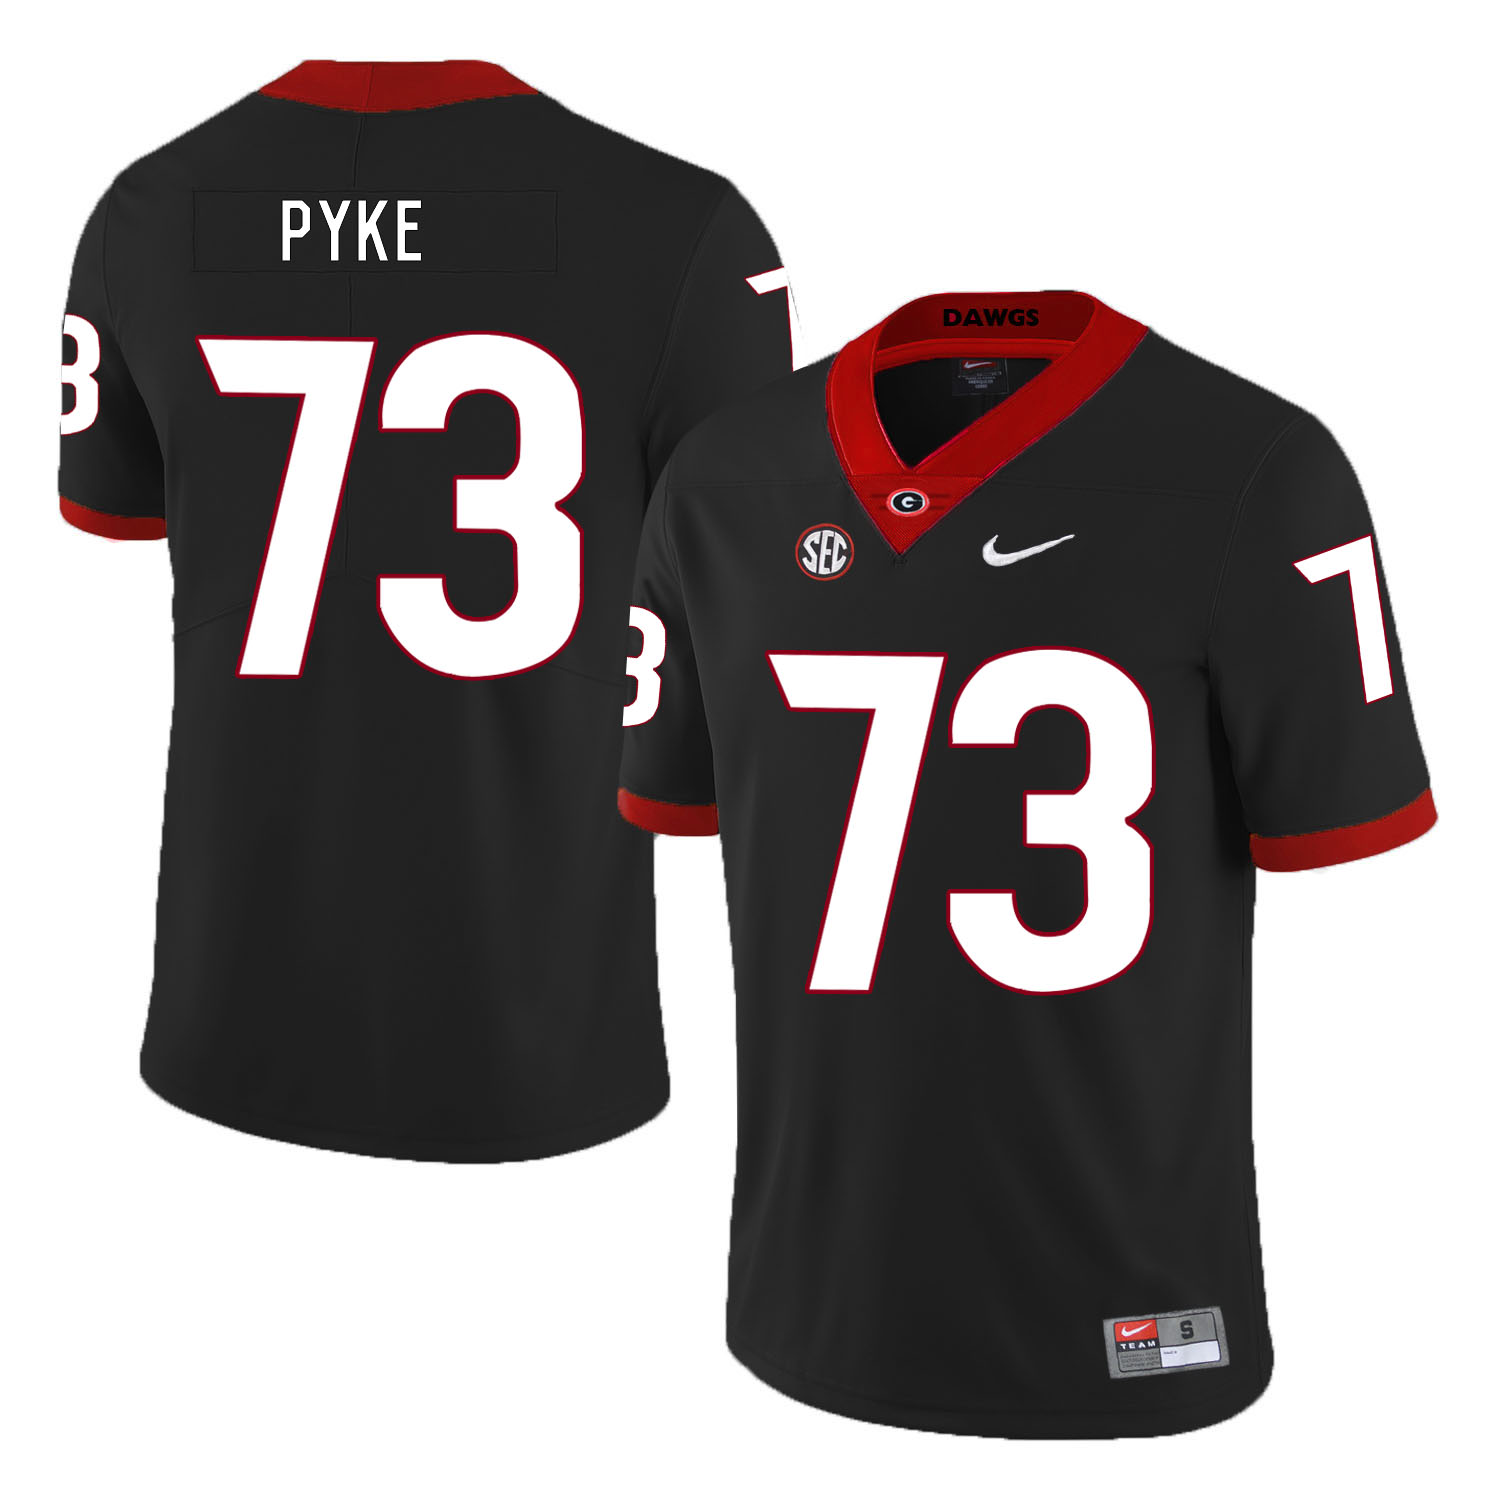 Georgia Bulldogs 73 Greg Pyke Black Nike College Football Jersey